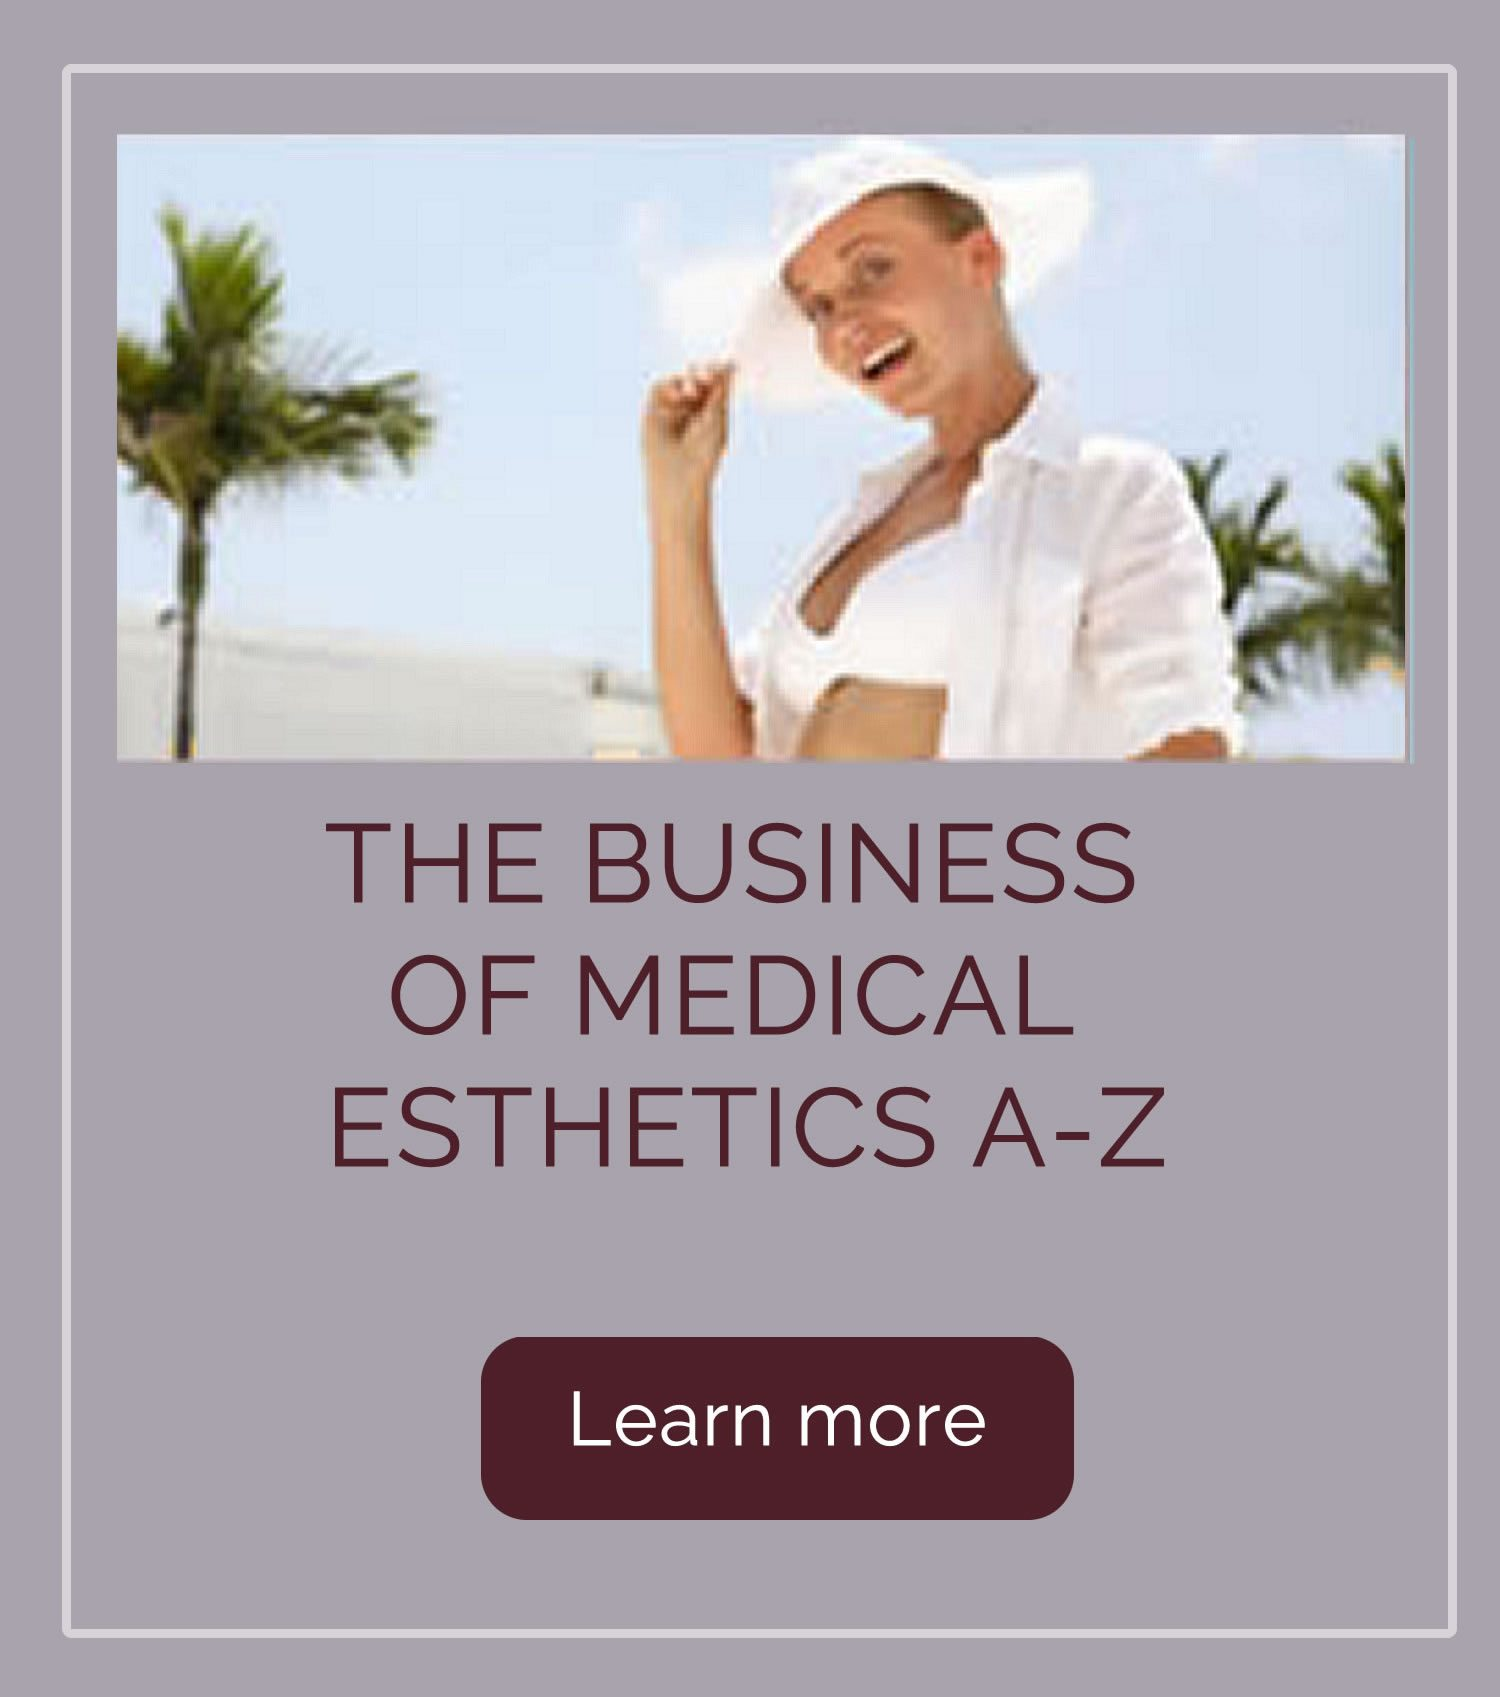 The Business of Medical Esthetics A-Z